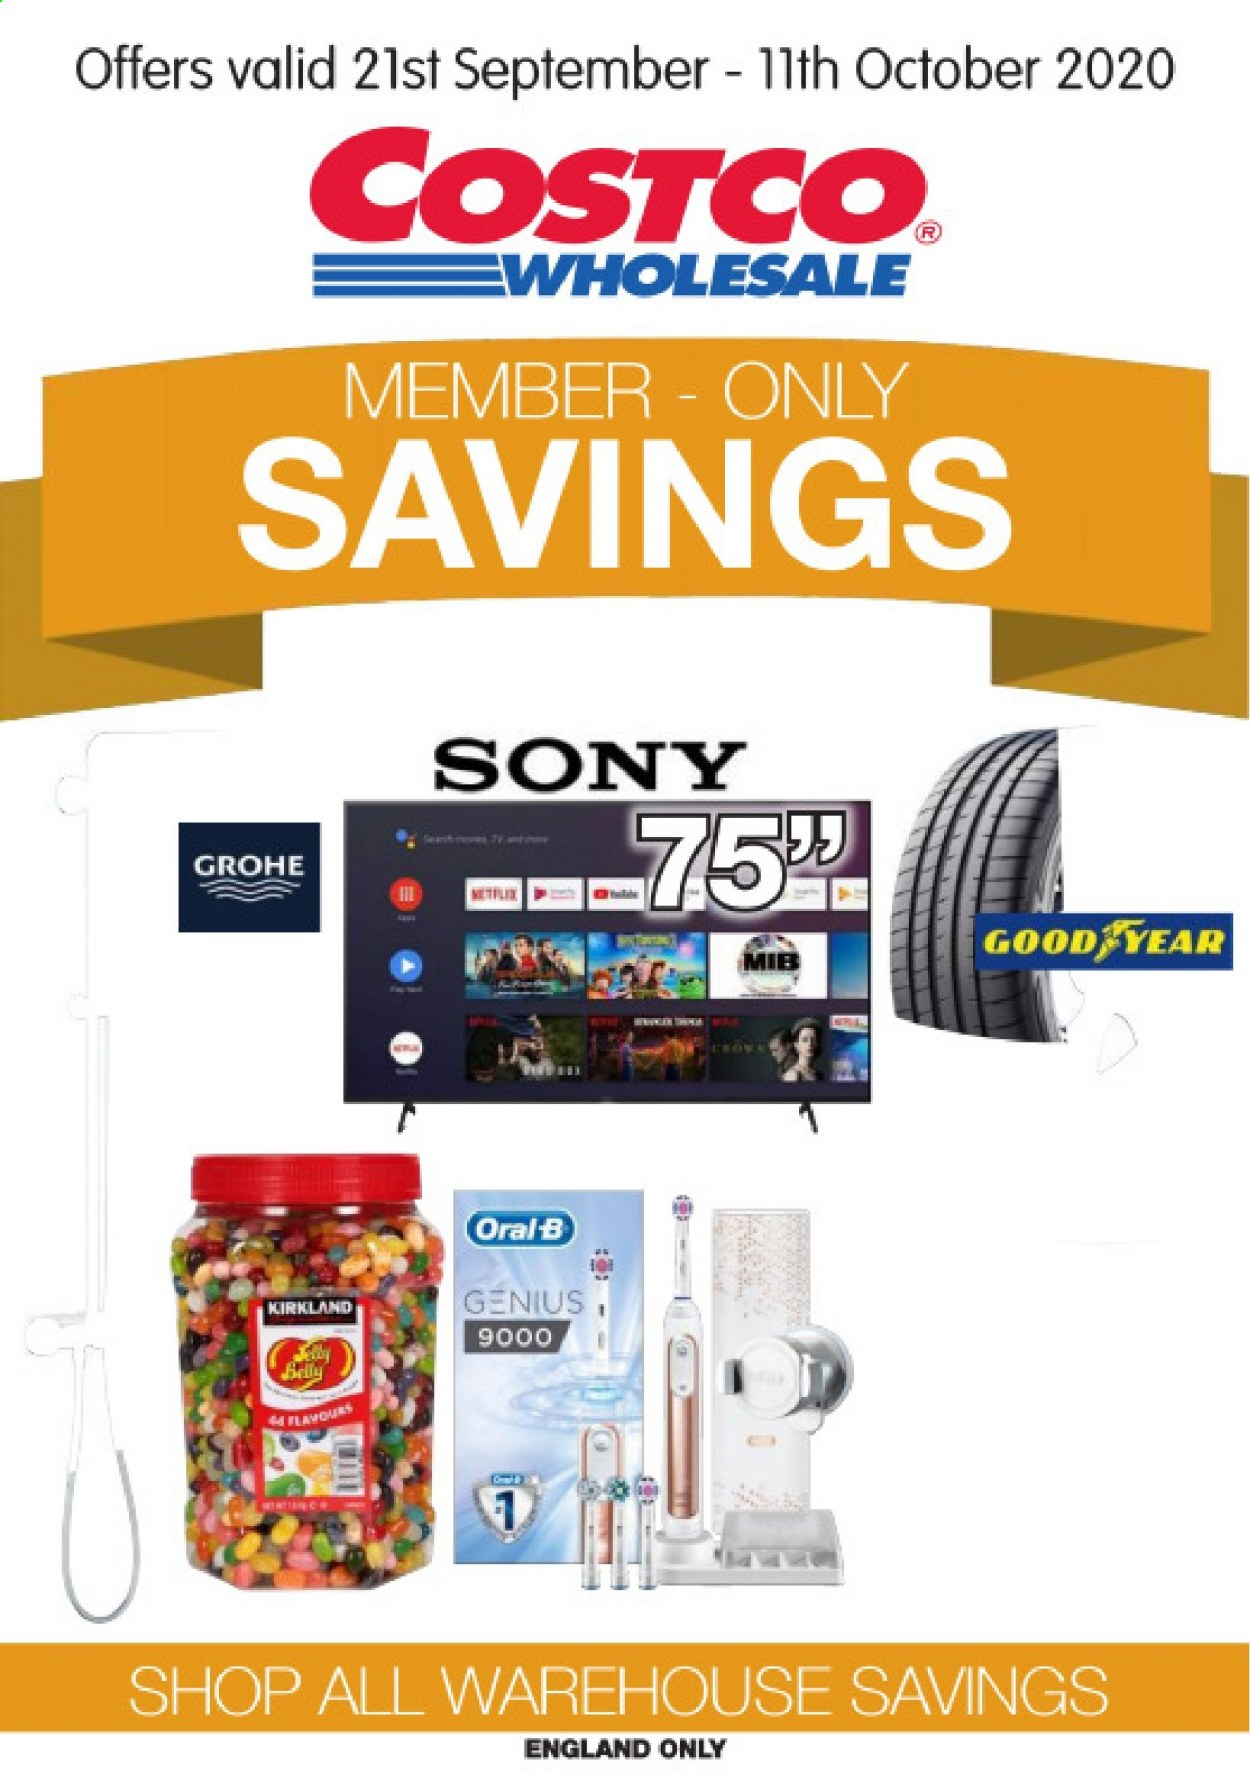 Costco offer  - 21.9.2020 - 11.10.2020 - Sales products - Sony, Oral-b, Grohe. Page 1.